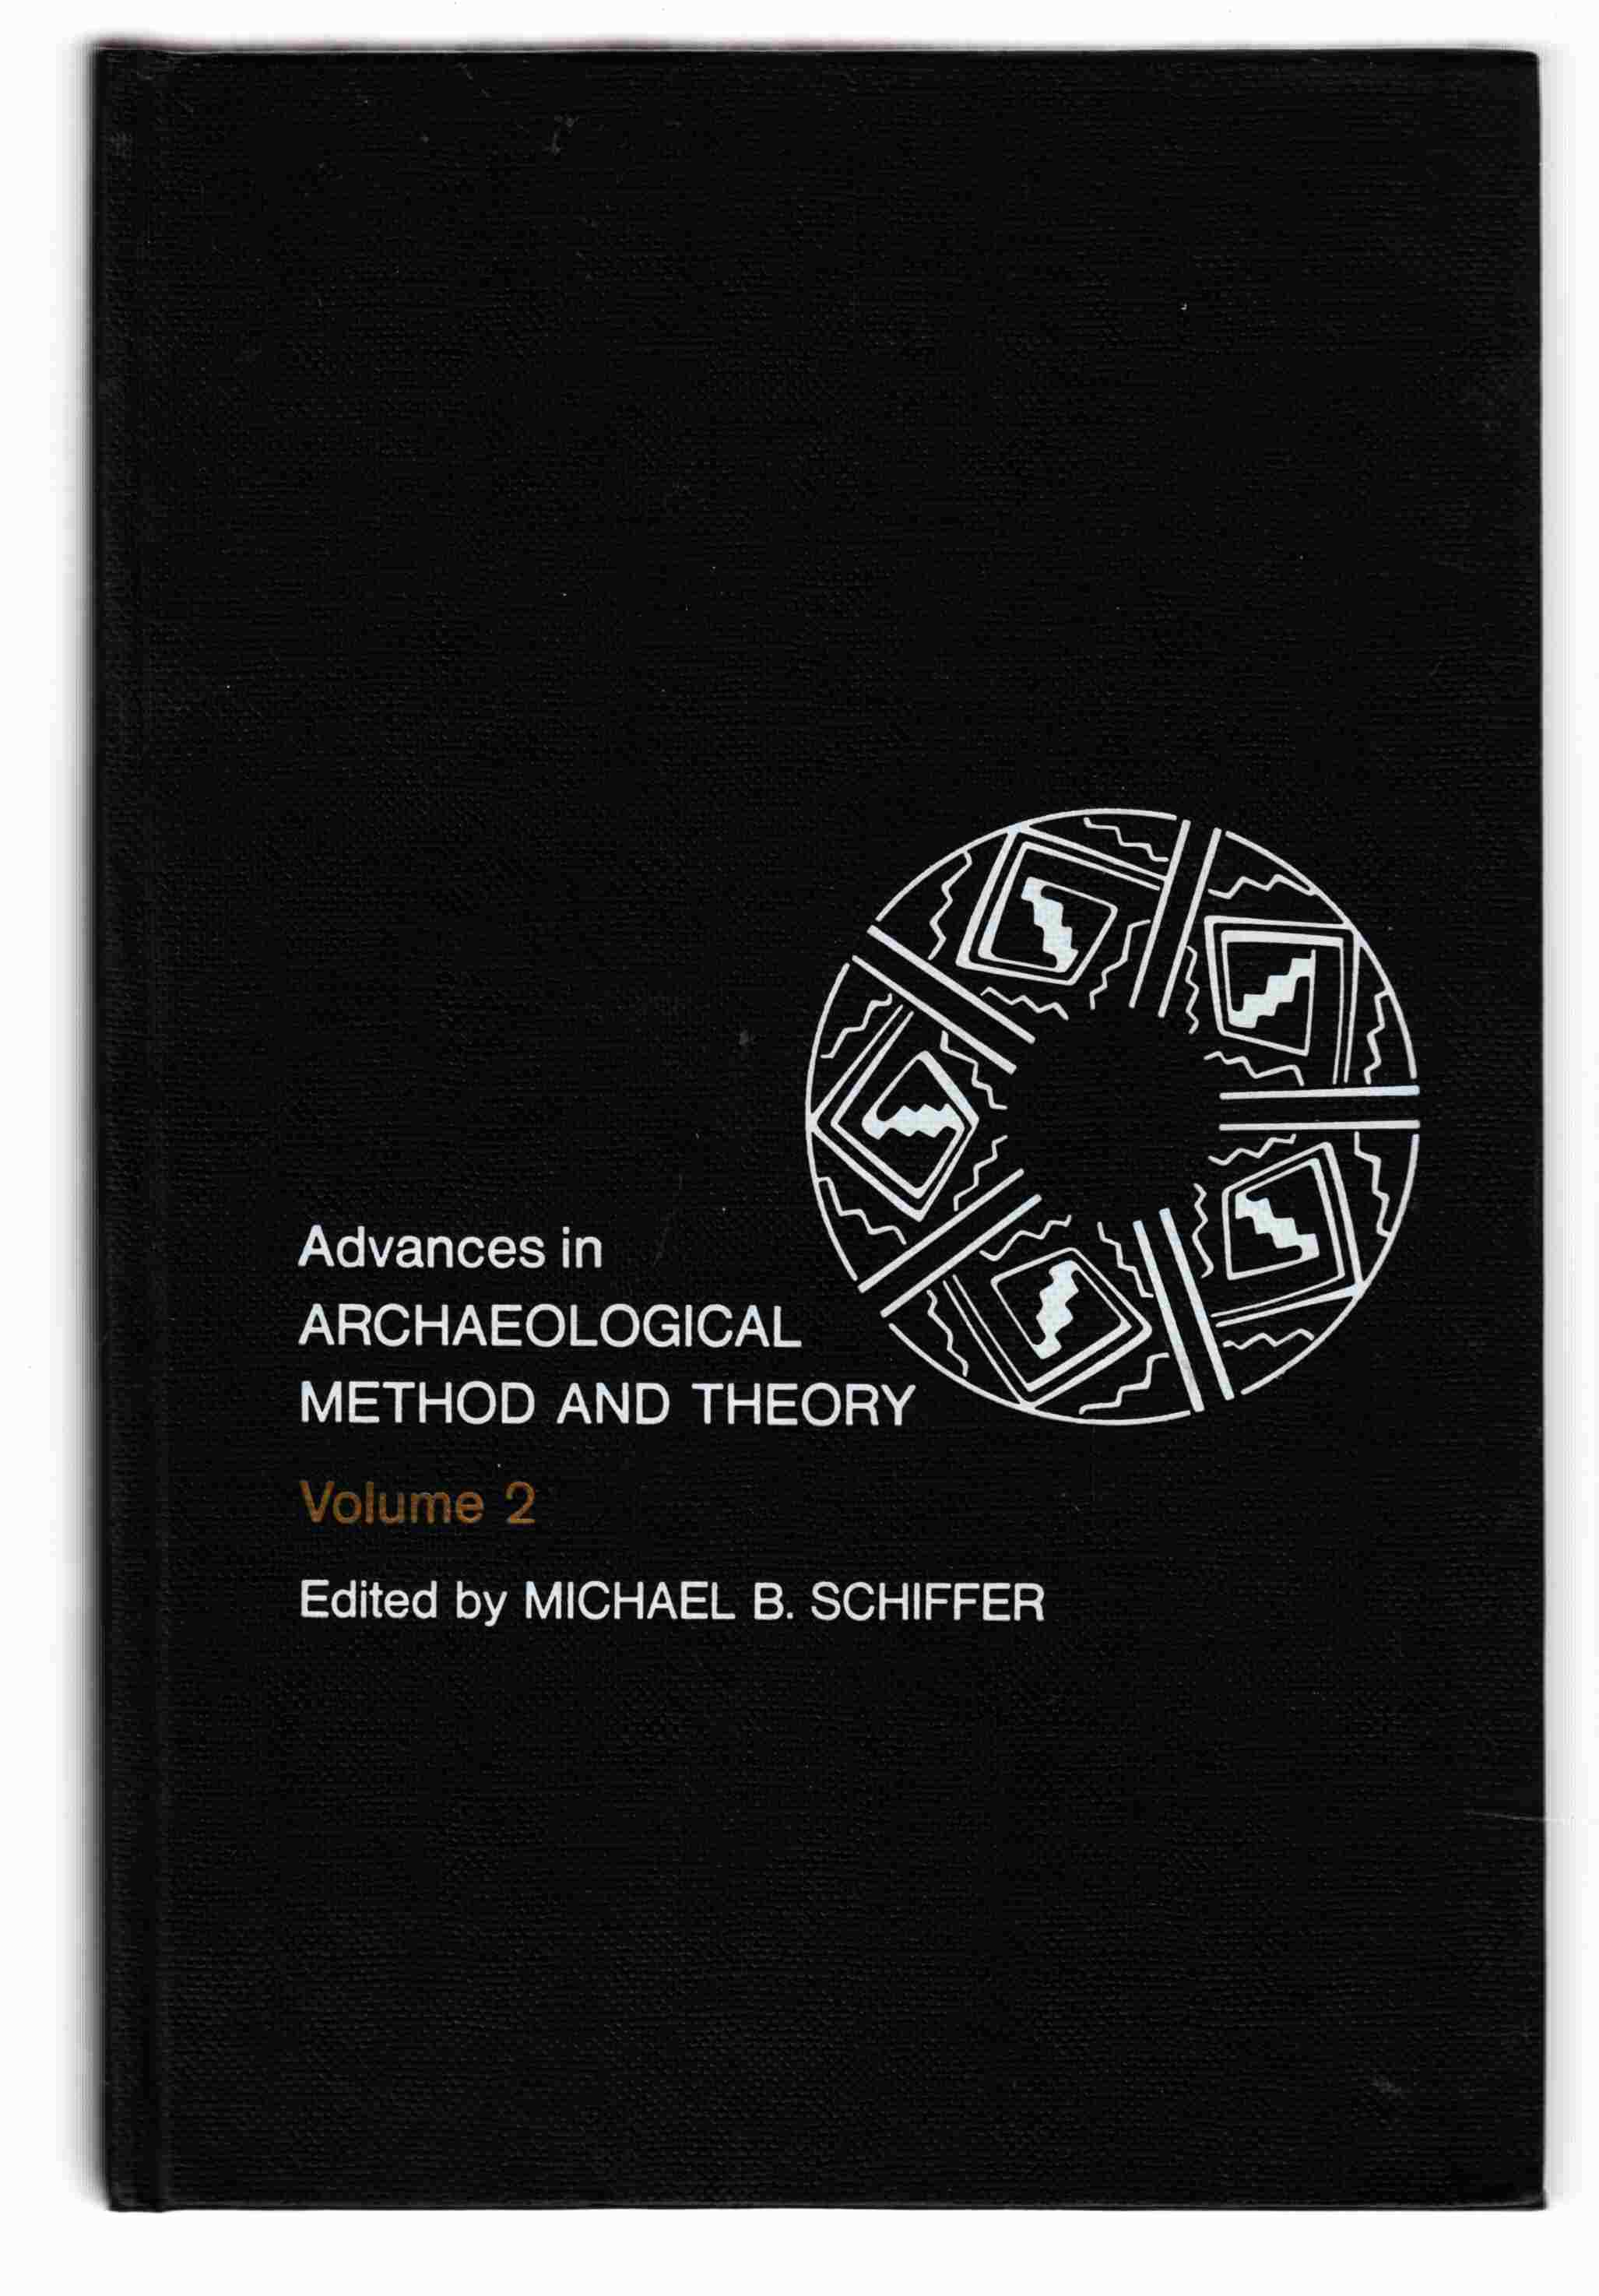 Image for Advances in Archaeological Method and Theory Volume 2